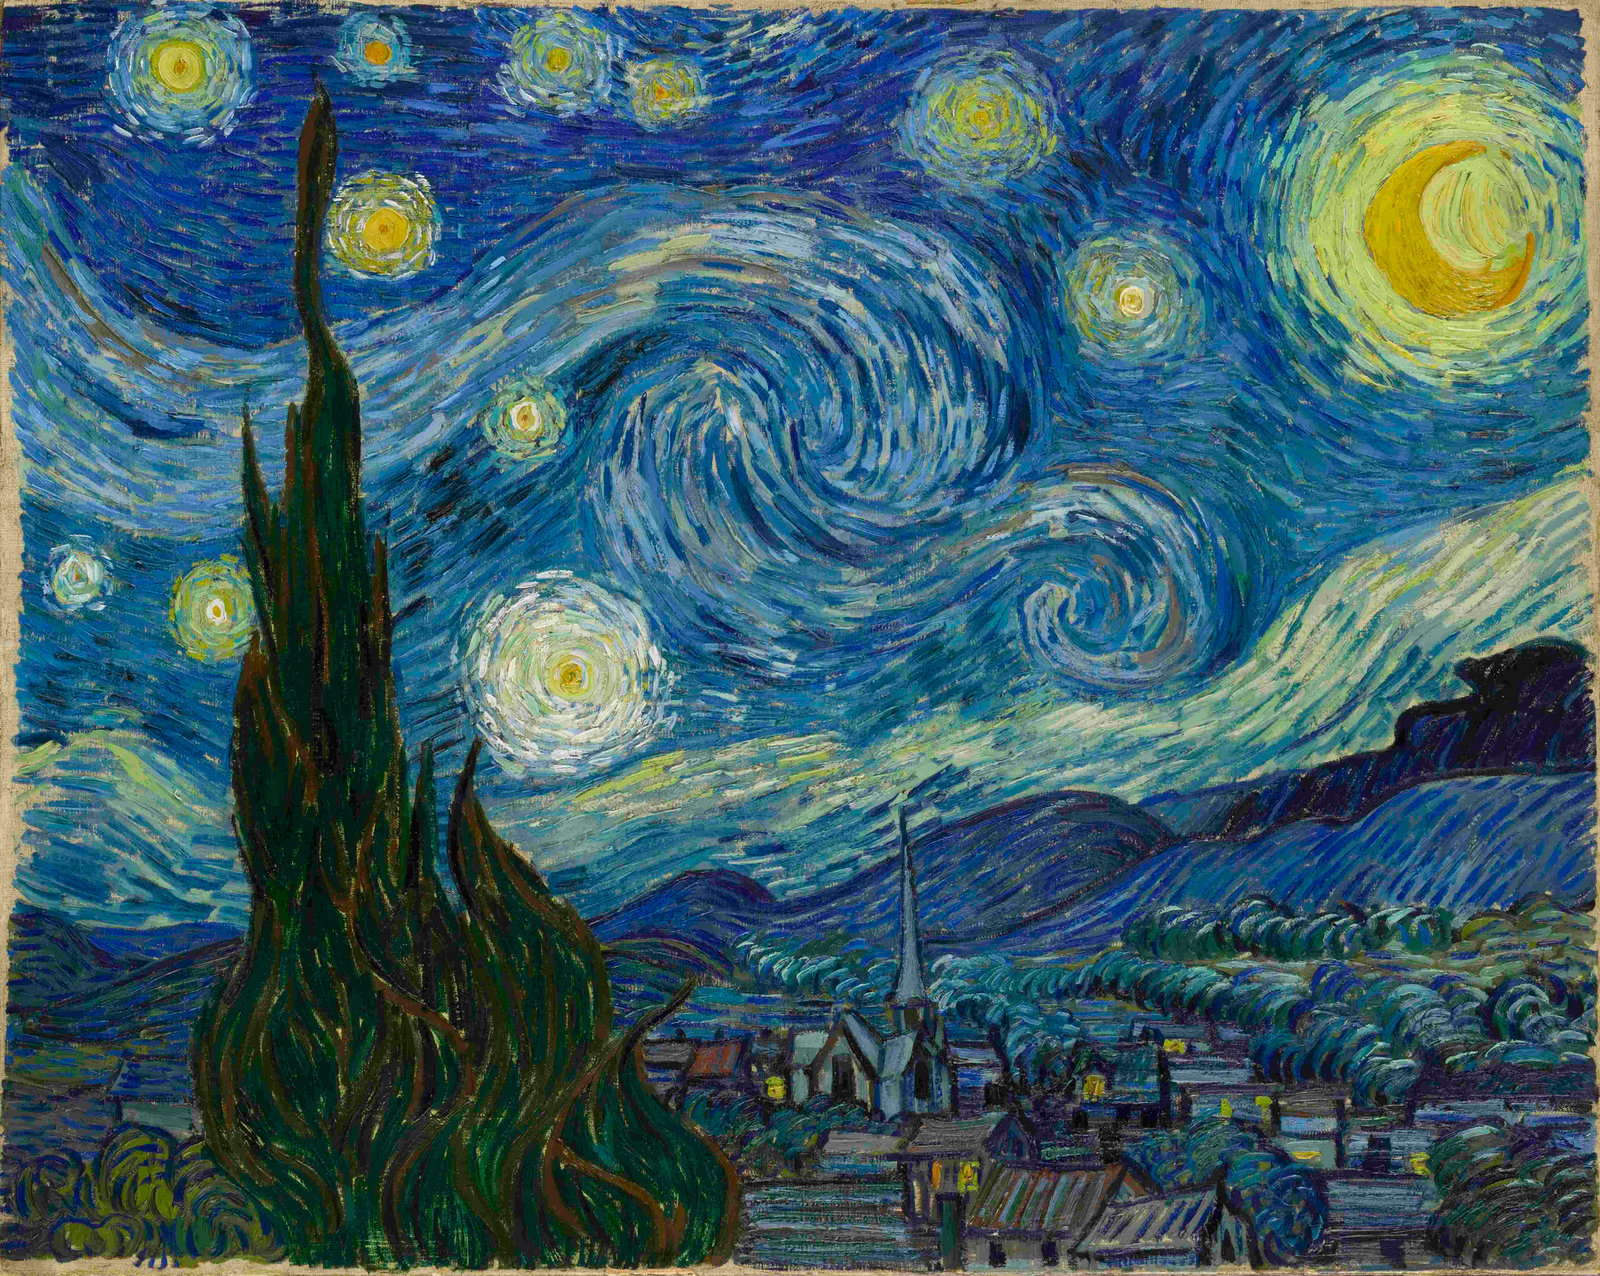 Starry Night,  Van Gogh, 1889